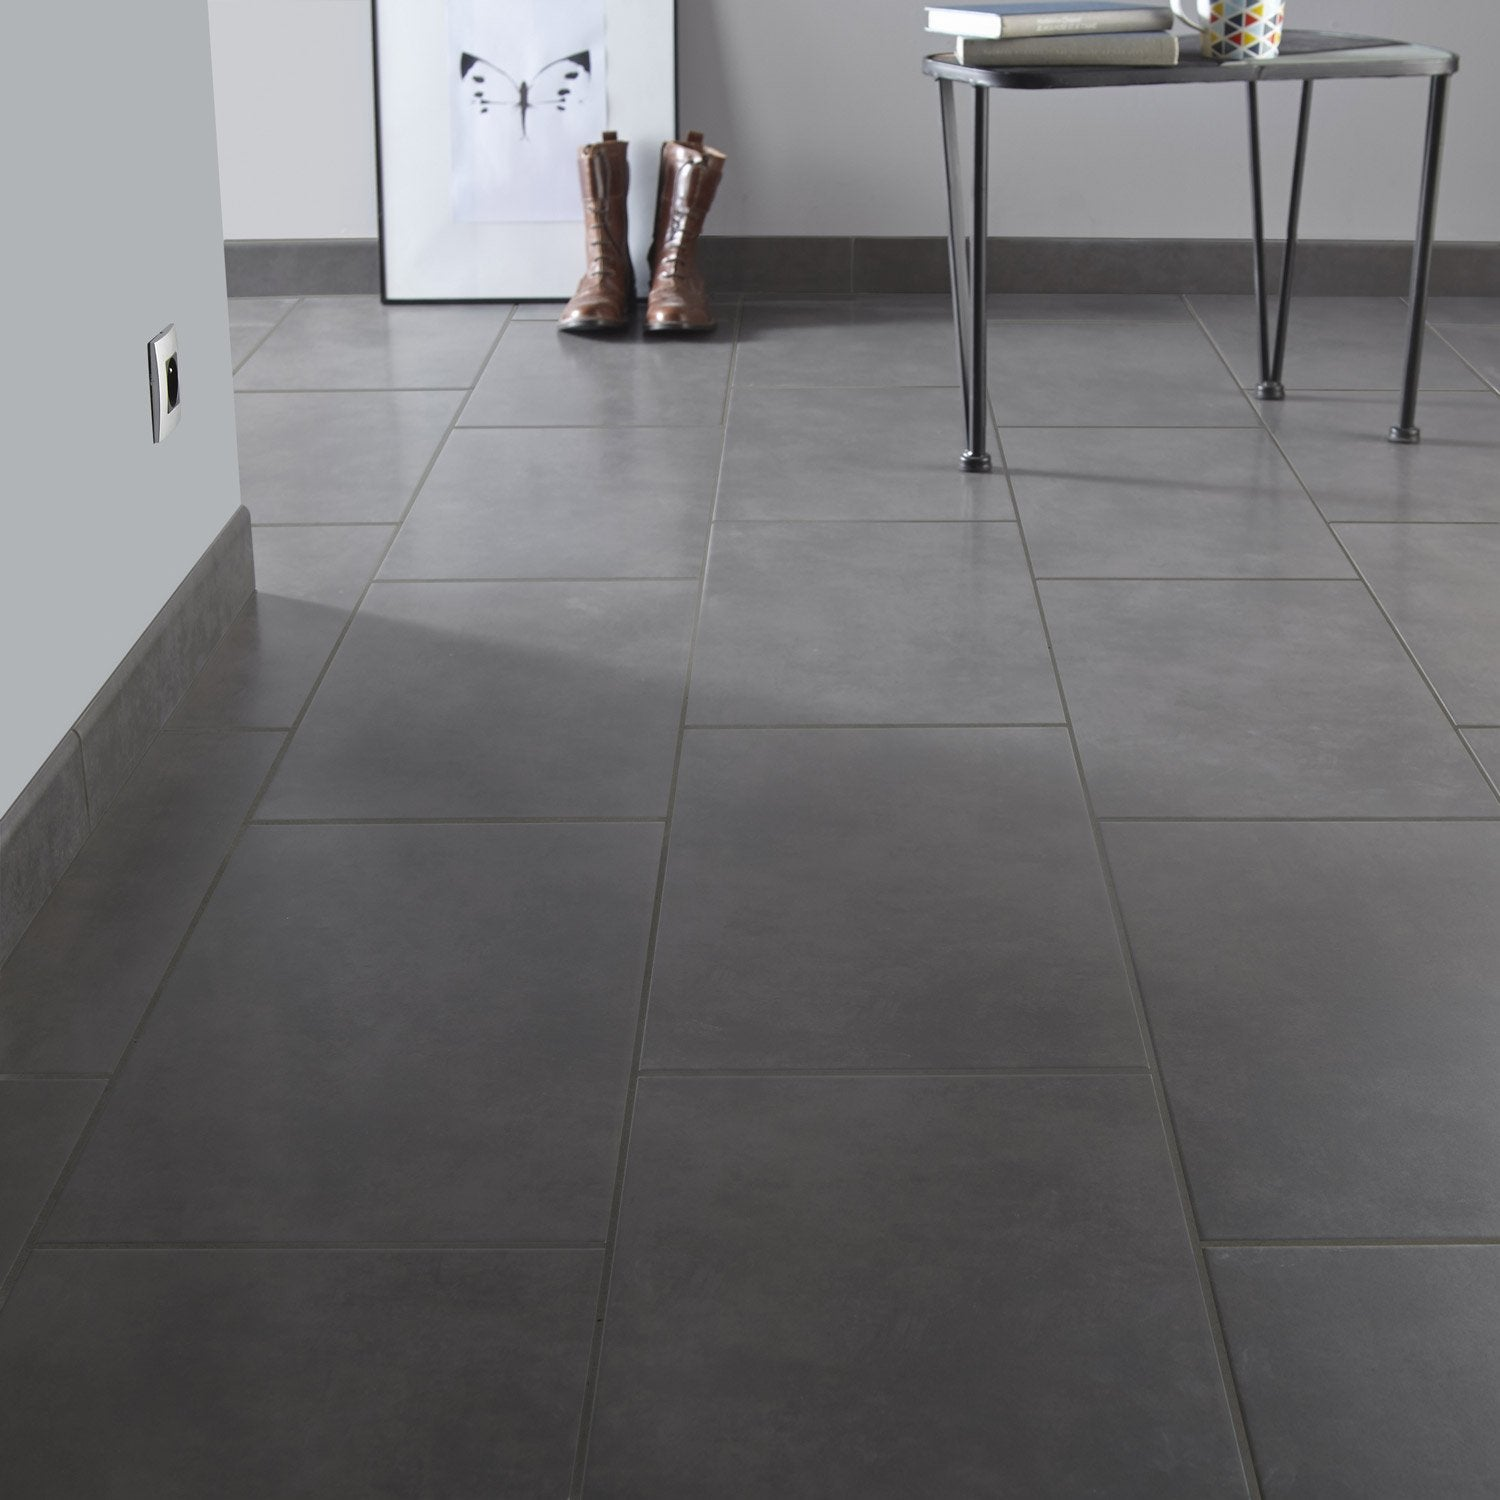 Carrelage sol et mur anthracite effet b ton blackpool for Carrelage sol gris anthracite